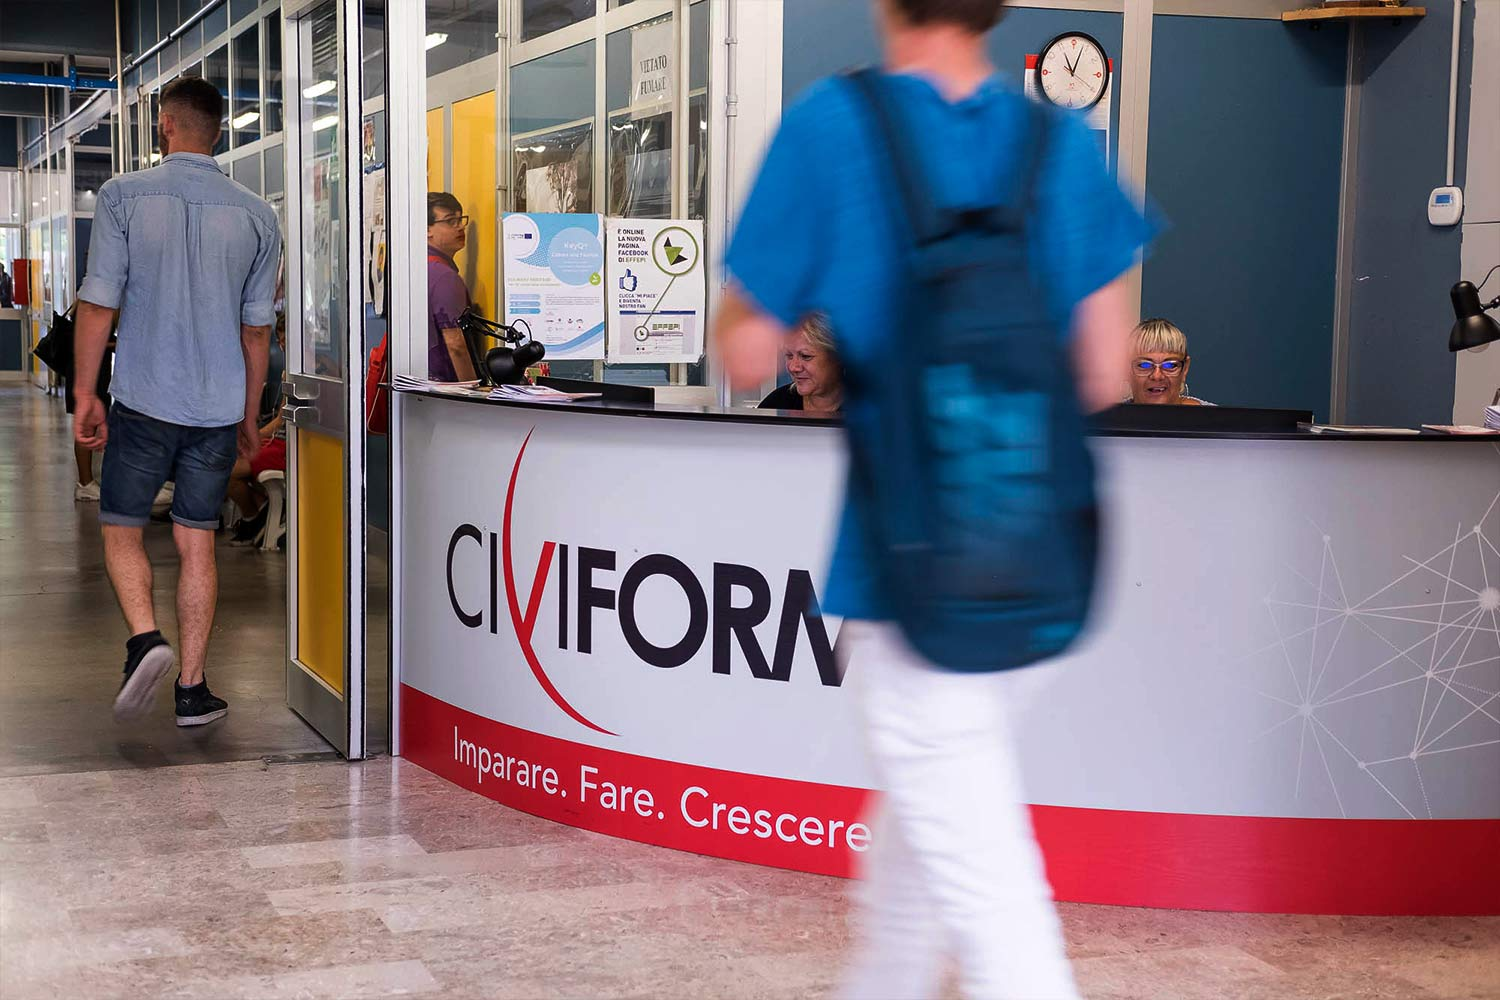 news-civiform-anno-formativo-2019